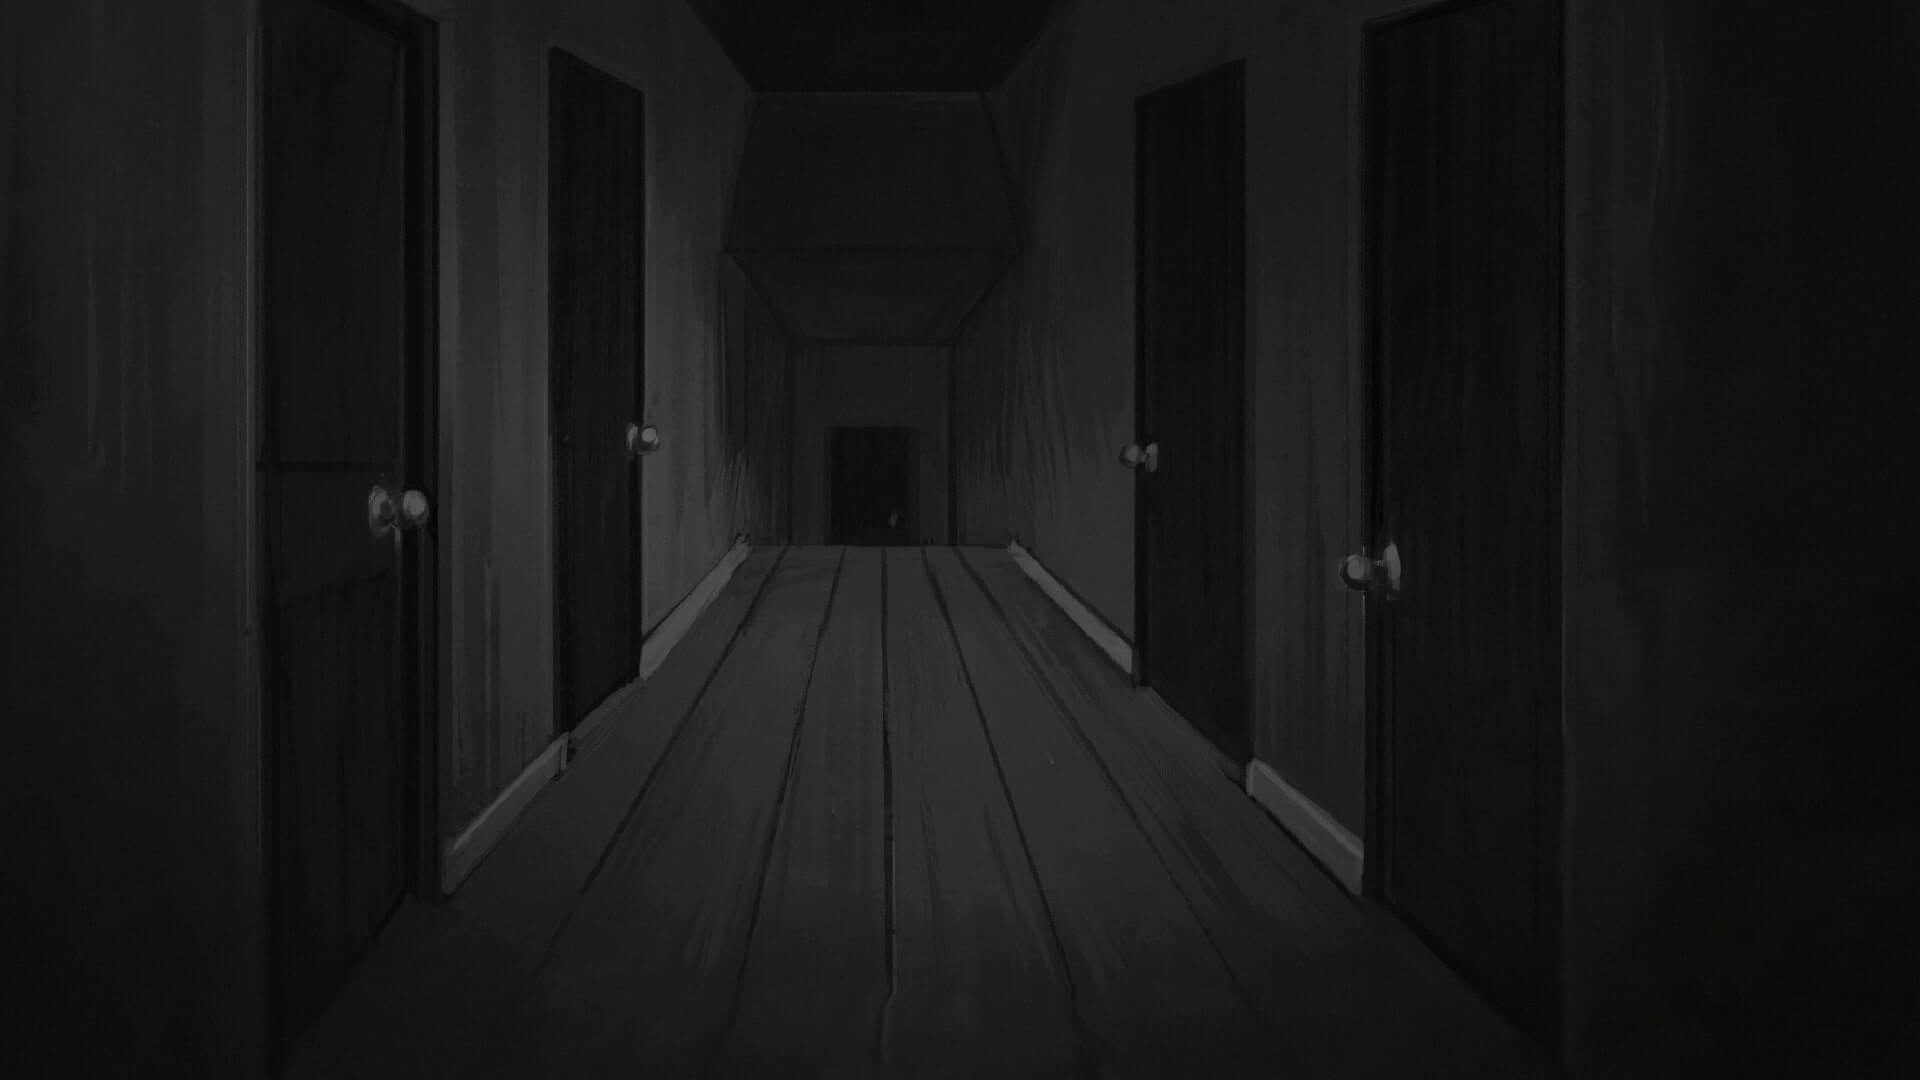 The hallway of the game